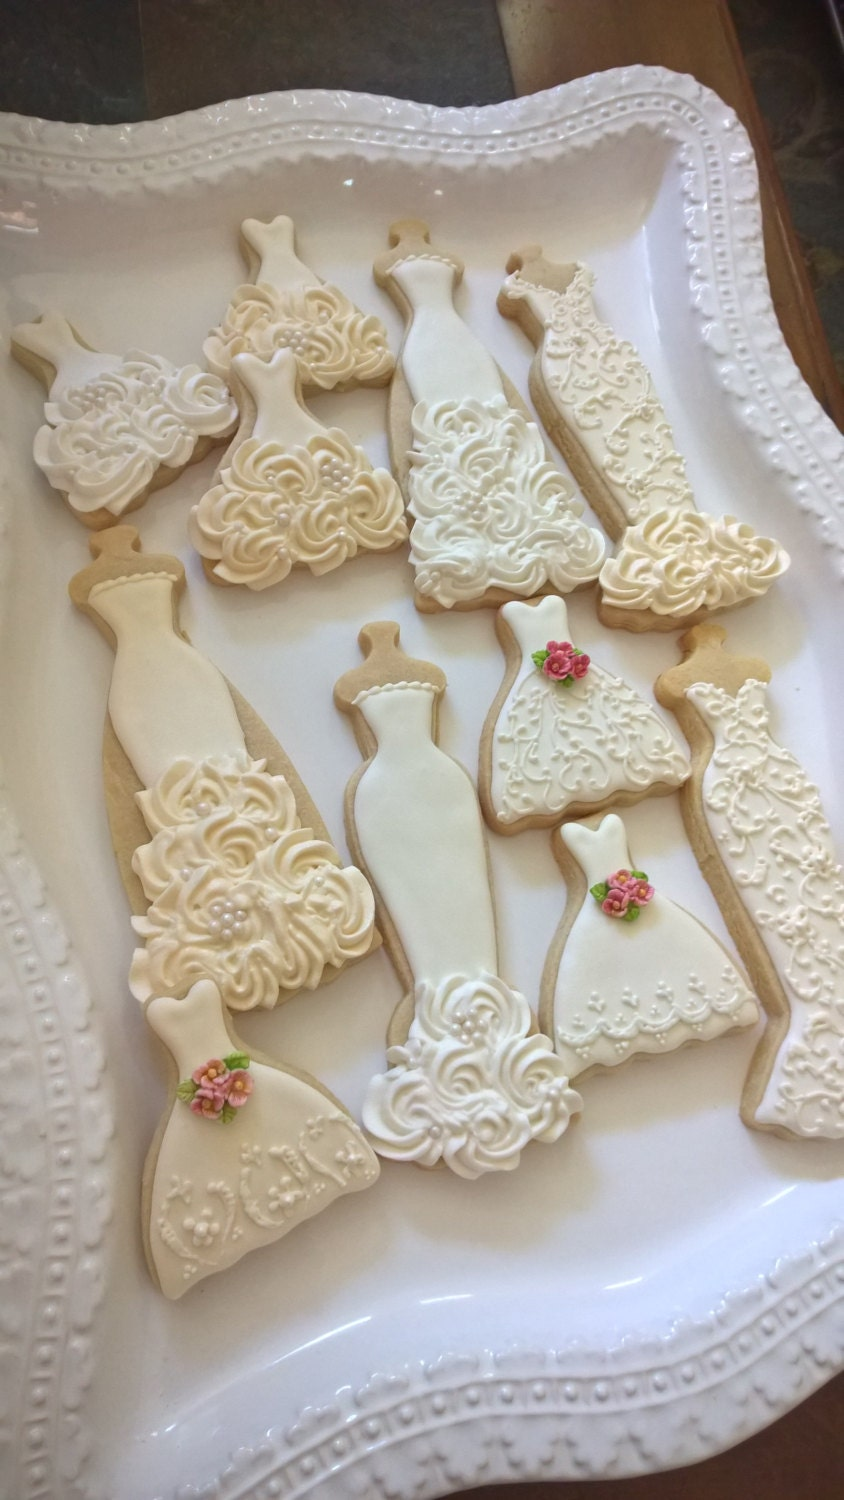 ecru and white wedding entourage dress cookies 10 bridal shower cookies wedding giveaway winter wedding bridesmaid gifts